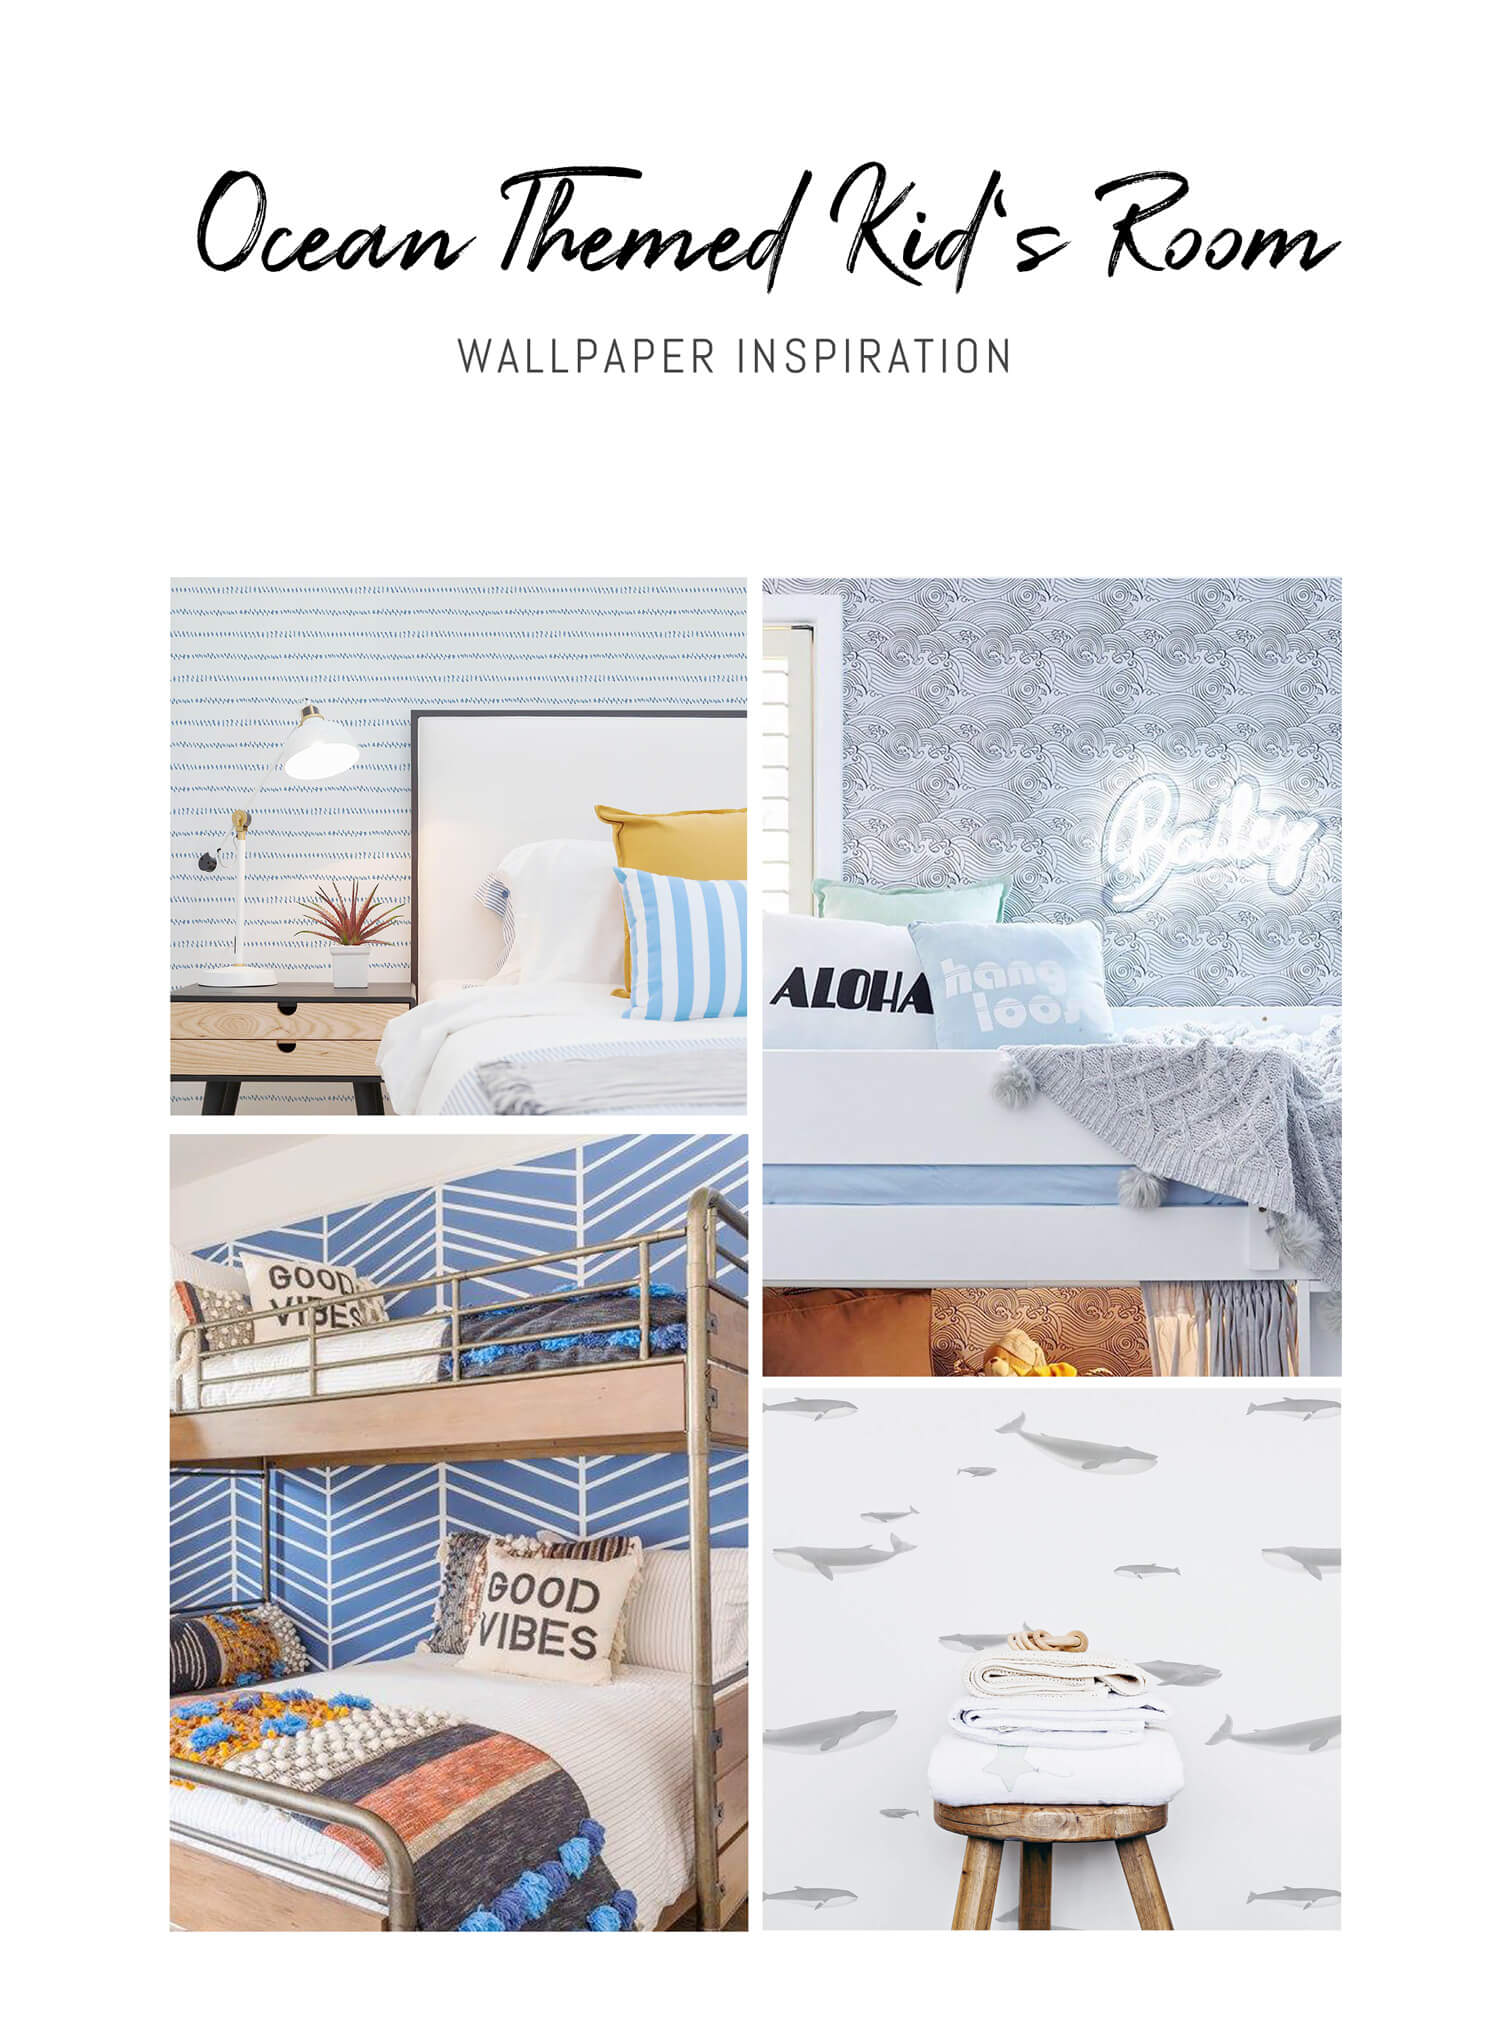 Modern beach theme kids bedroom interiors with nautical removable wallpaper